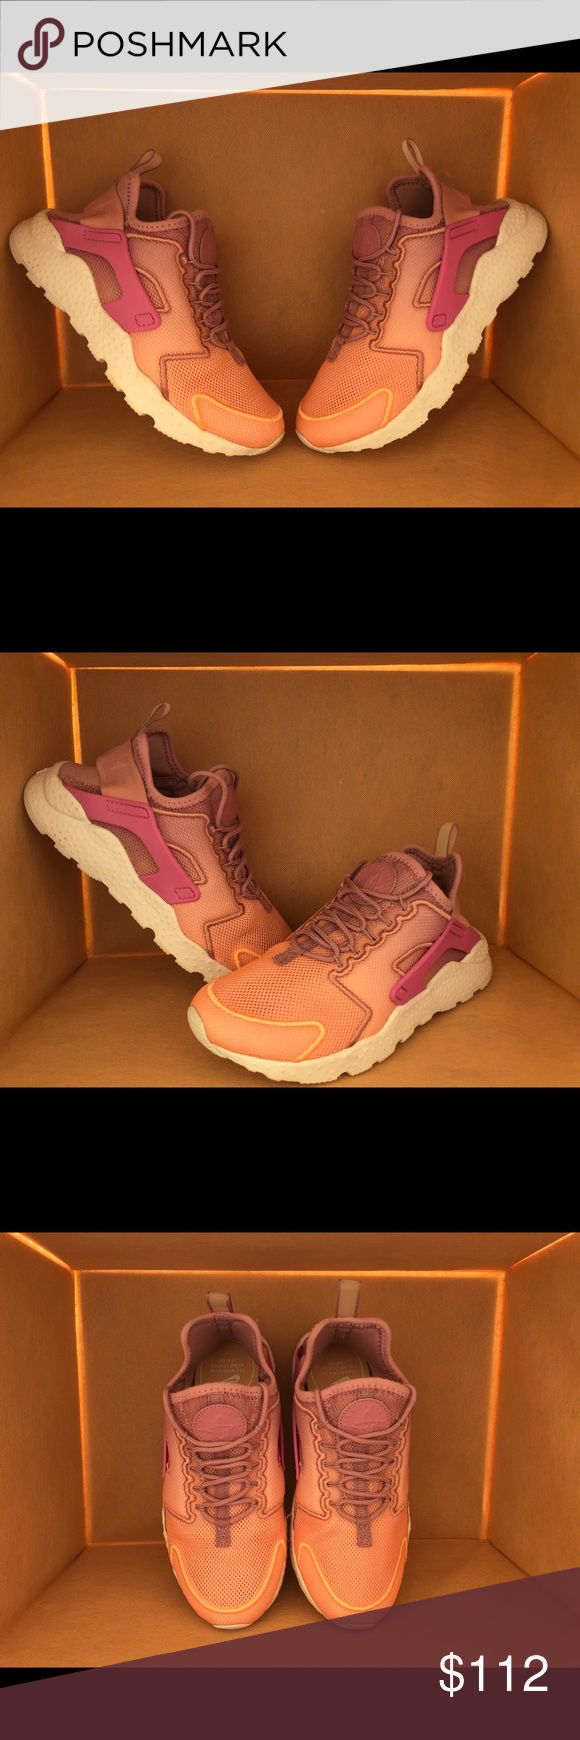 Air Huarache Run Ultra NWT. In box - no lid. Designed to stretch with your foot, the Nike Air Huarache Women's Shoe has remained a sneaker staple since its 1991 debut, when it changed the face of running footwear forever. This Ultra version updates the original design with a lightweight construction for enhanced comfort. Nike Shoes Sneakers